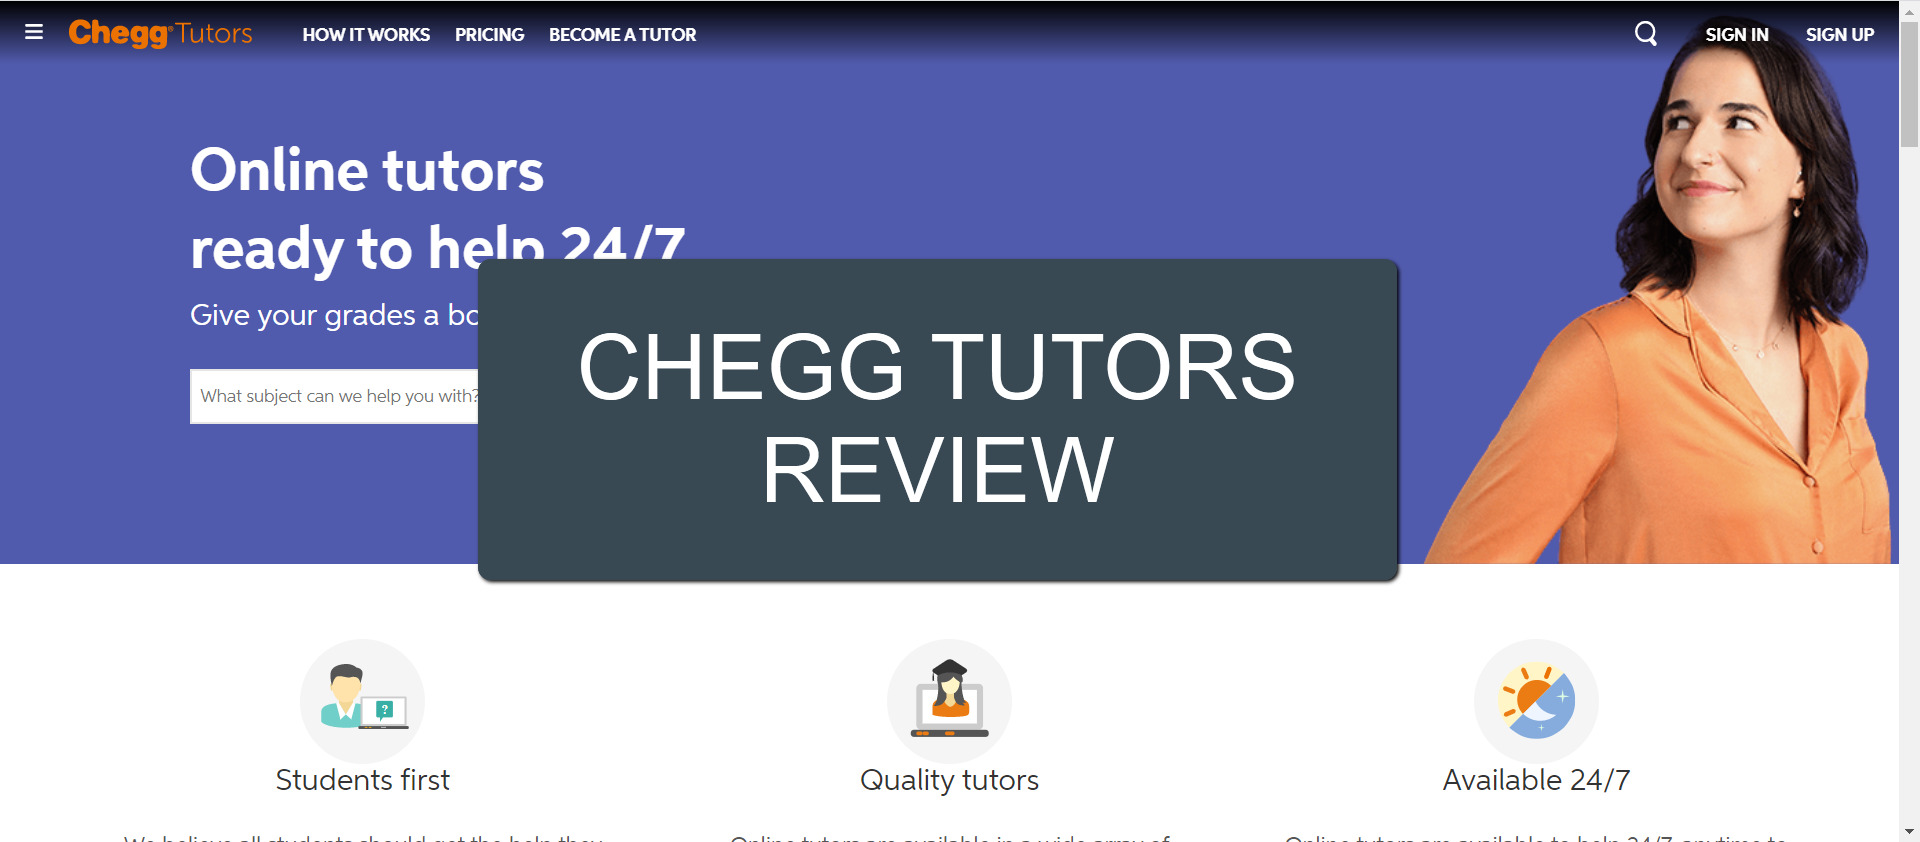 Chegg Tutors featured